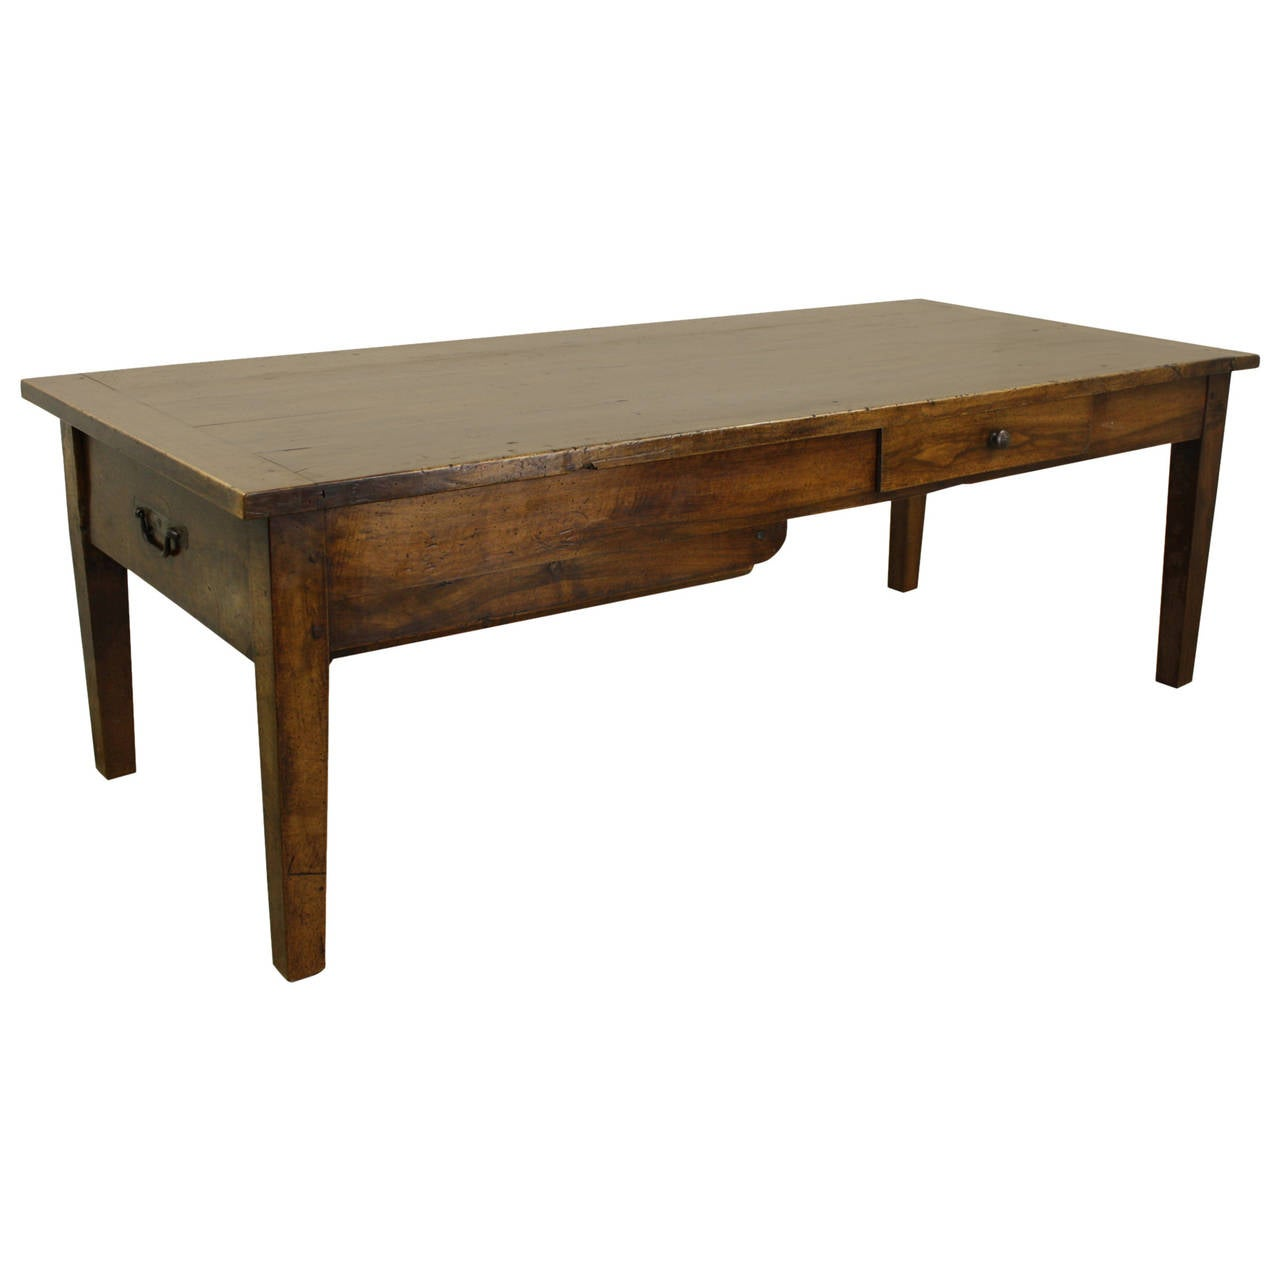 Antique Walnut Coffee Table With Two Drawers For Sale At 1stdibs